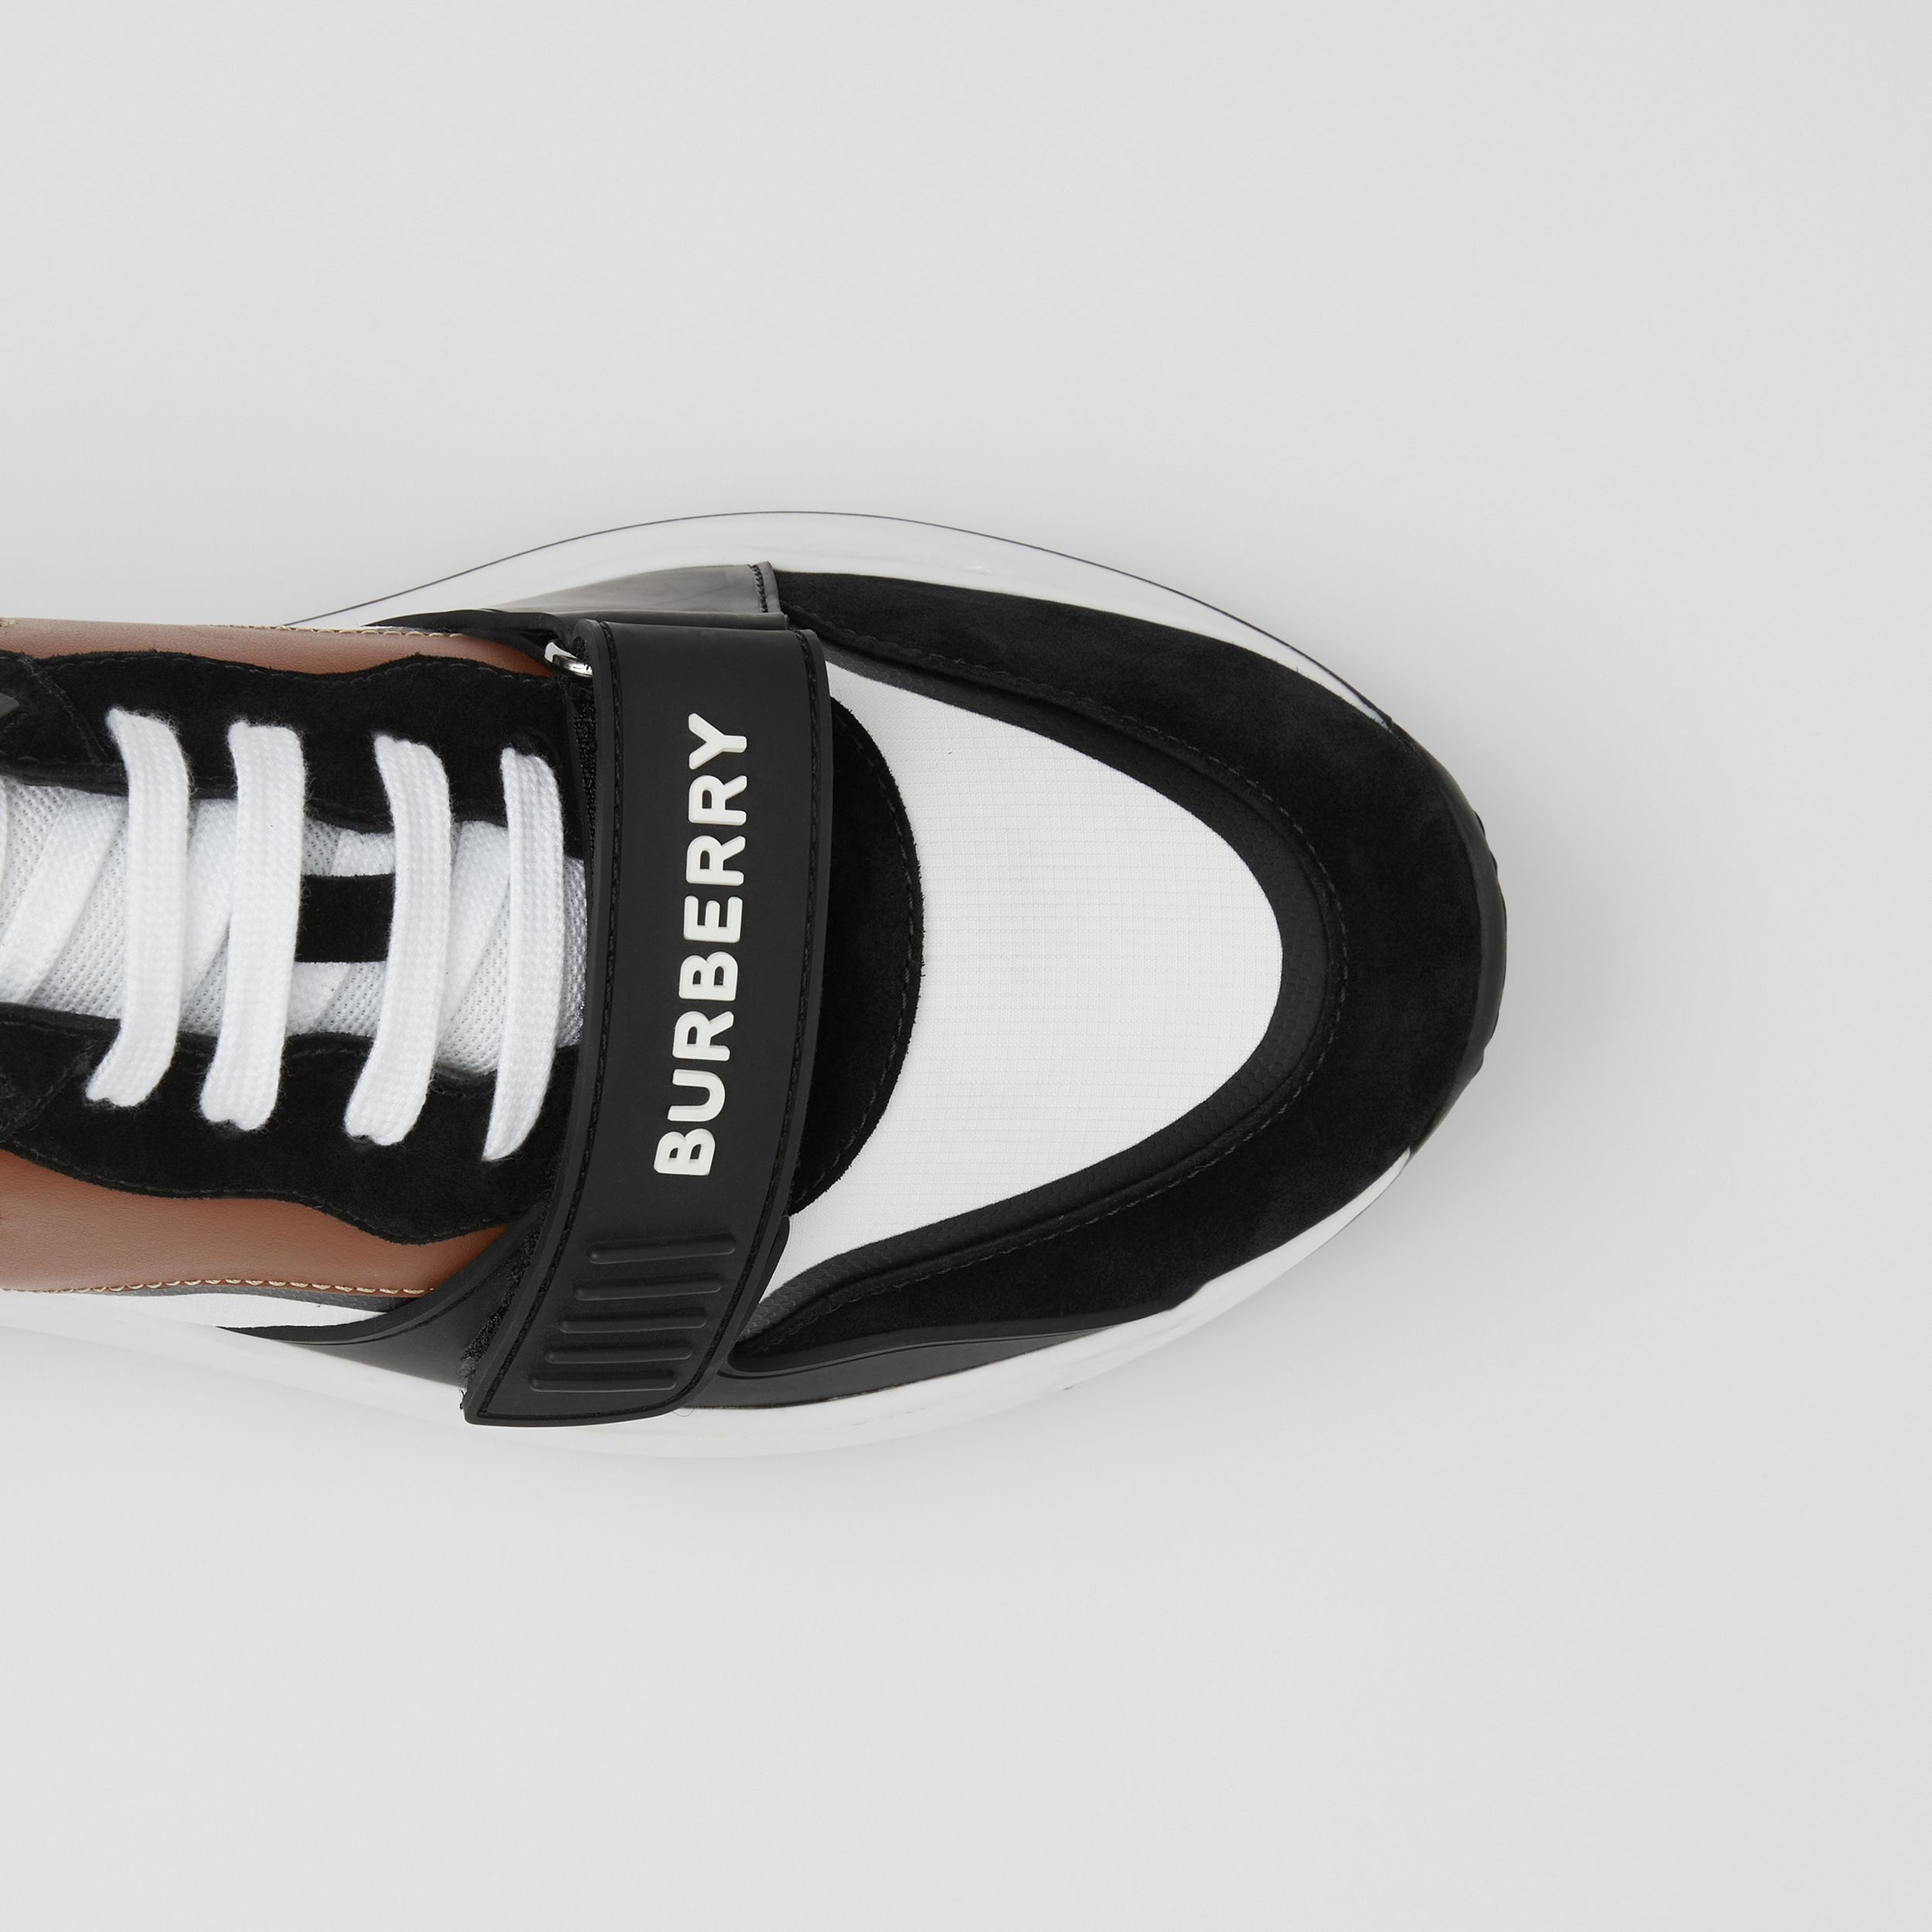 Leather, Suede and Vintage Check Sneakers in Black/archive Beige - Women | Burberry - 2